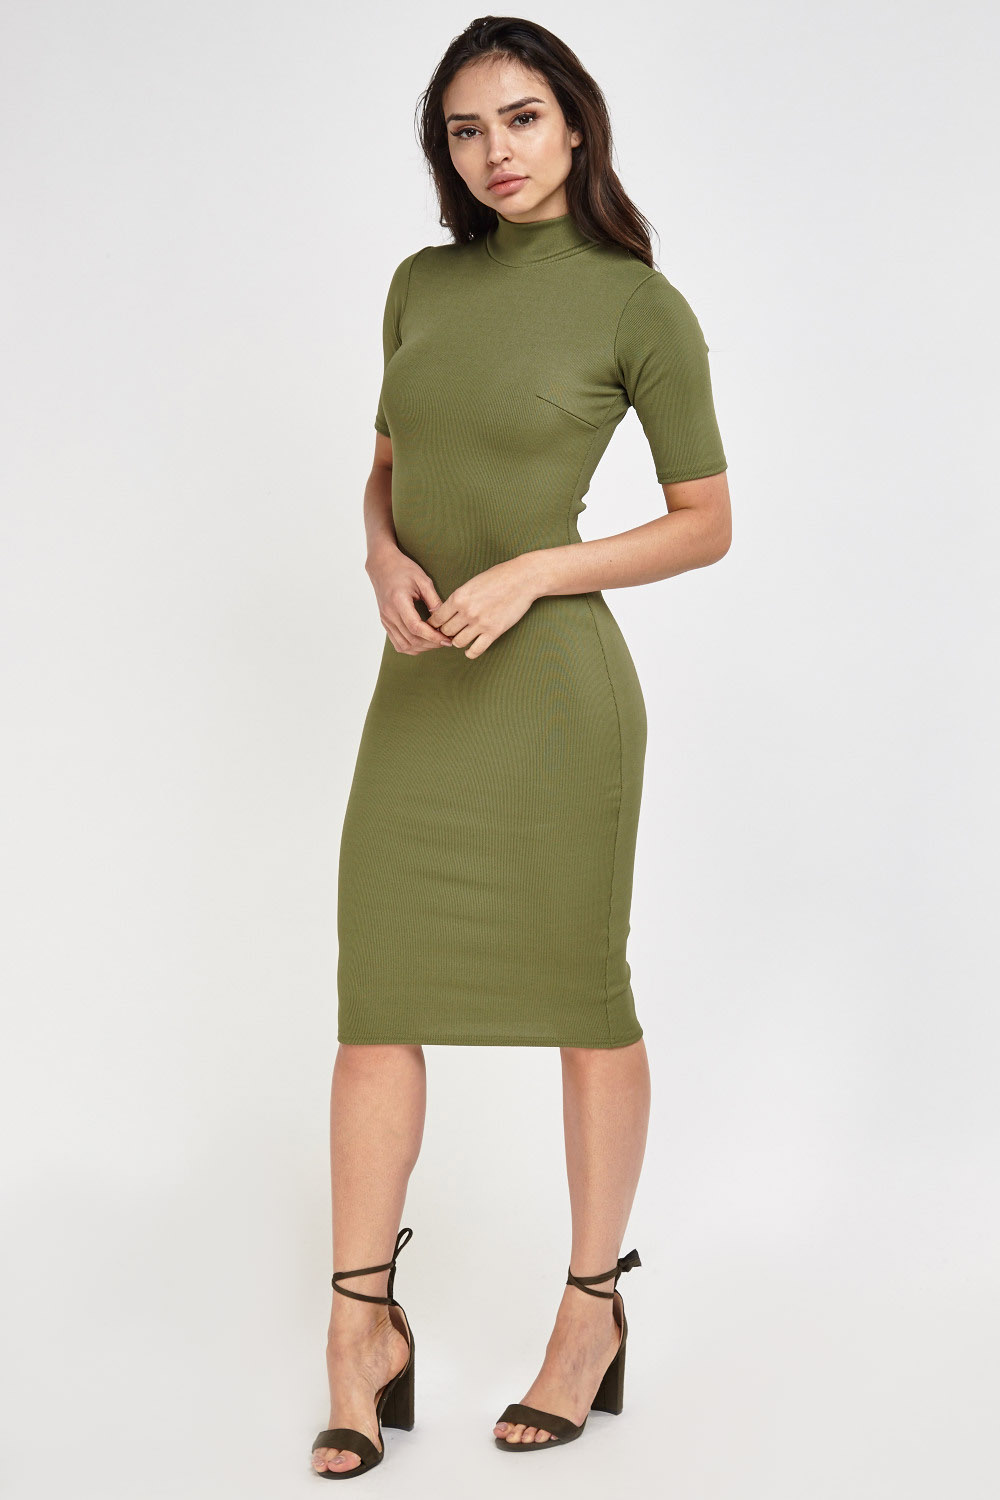 025277a1c7ff Ribbed Midi Olive Bodycon Dress - Just £5